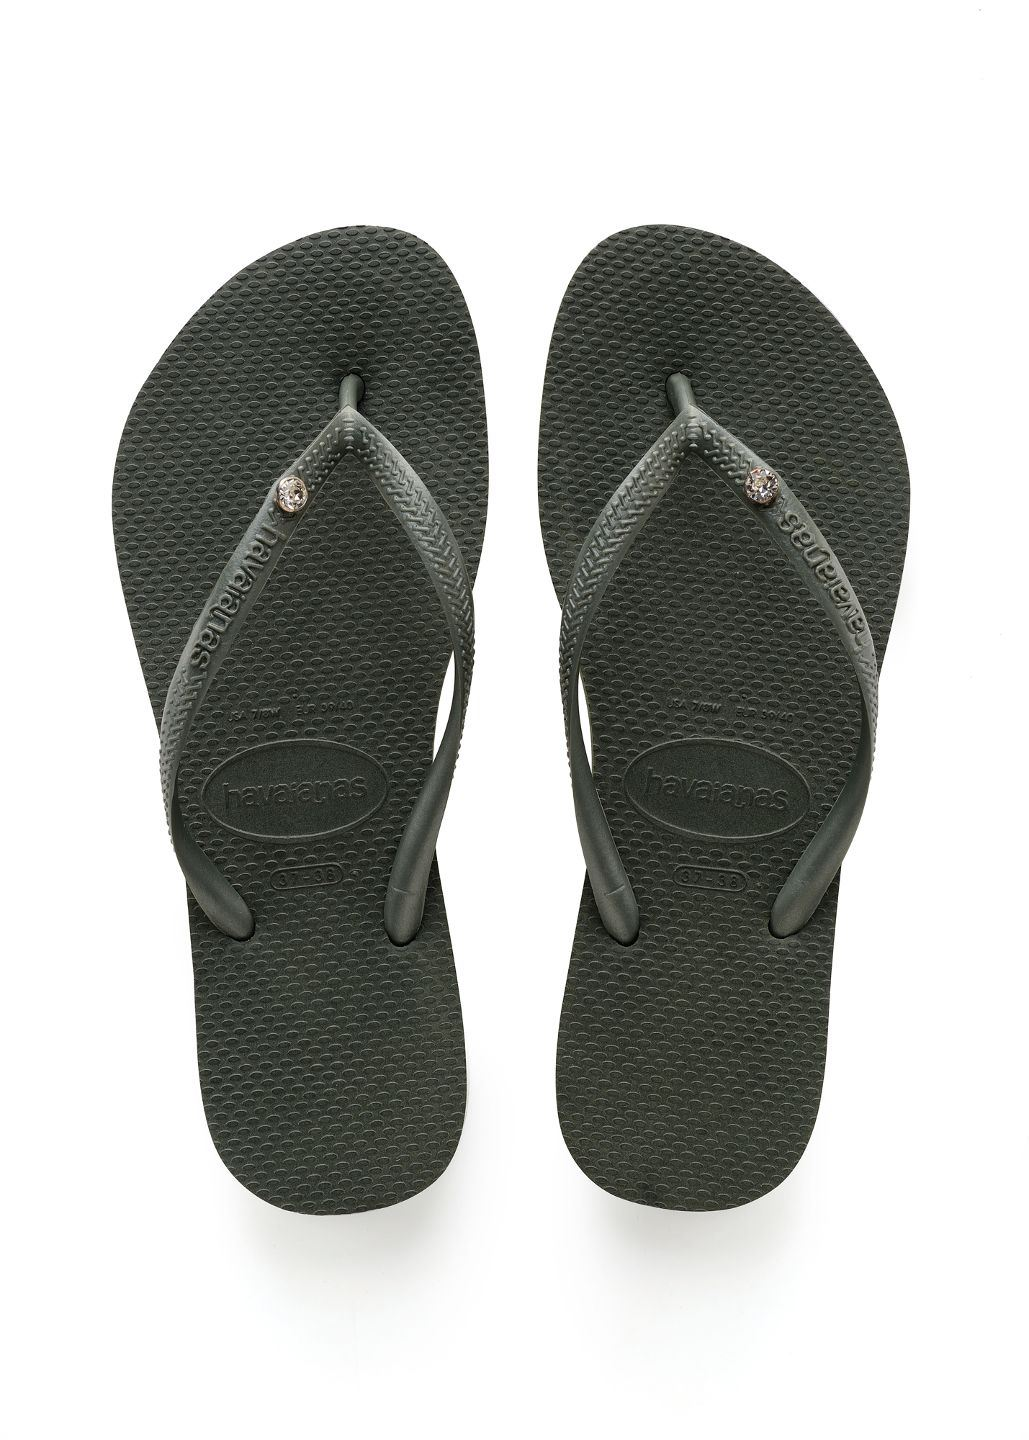 131b378d339a3c Image is loading Havaianas-Crystal-Glamour-Olive-Green-Flip-Flops